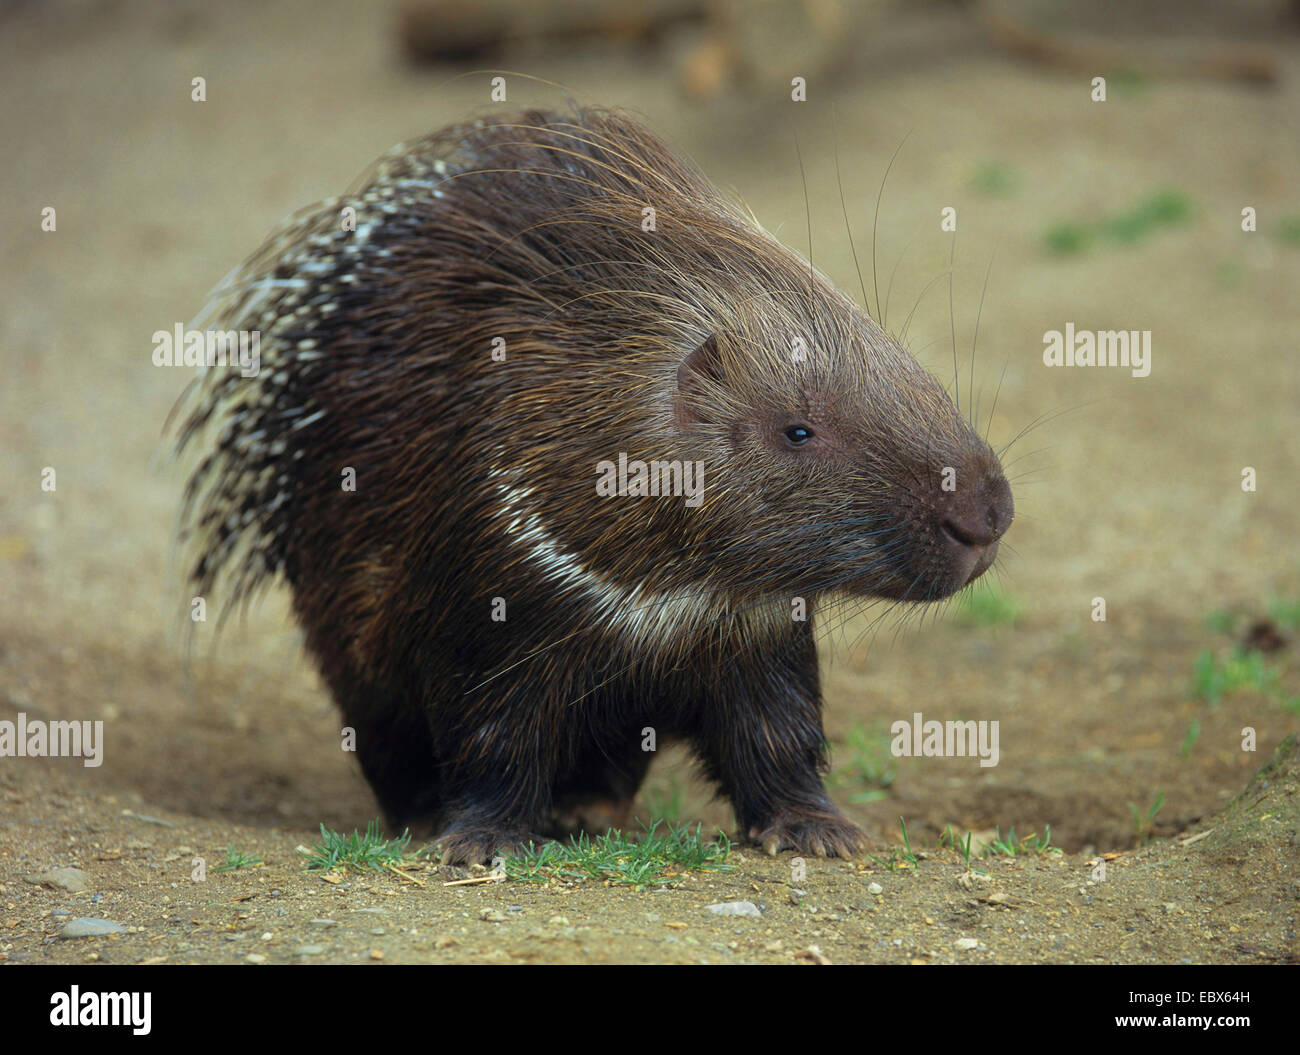 African porcupine, crested porcupine (Hystrix cristata), single individual - Stock Image